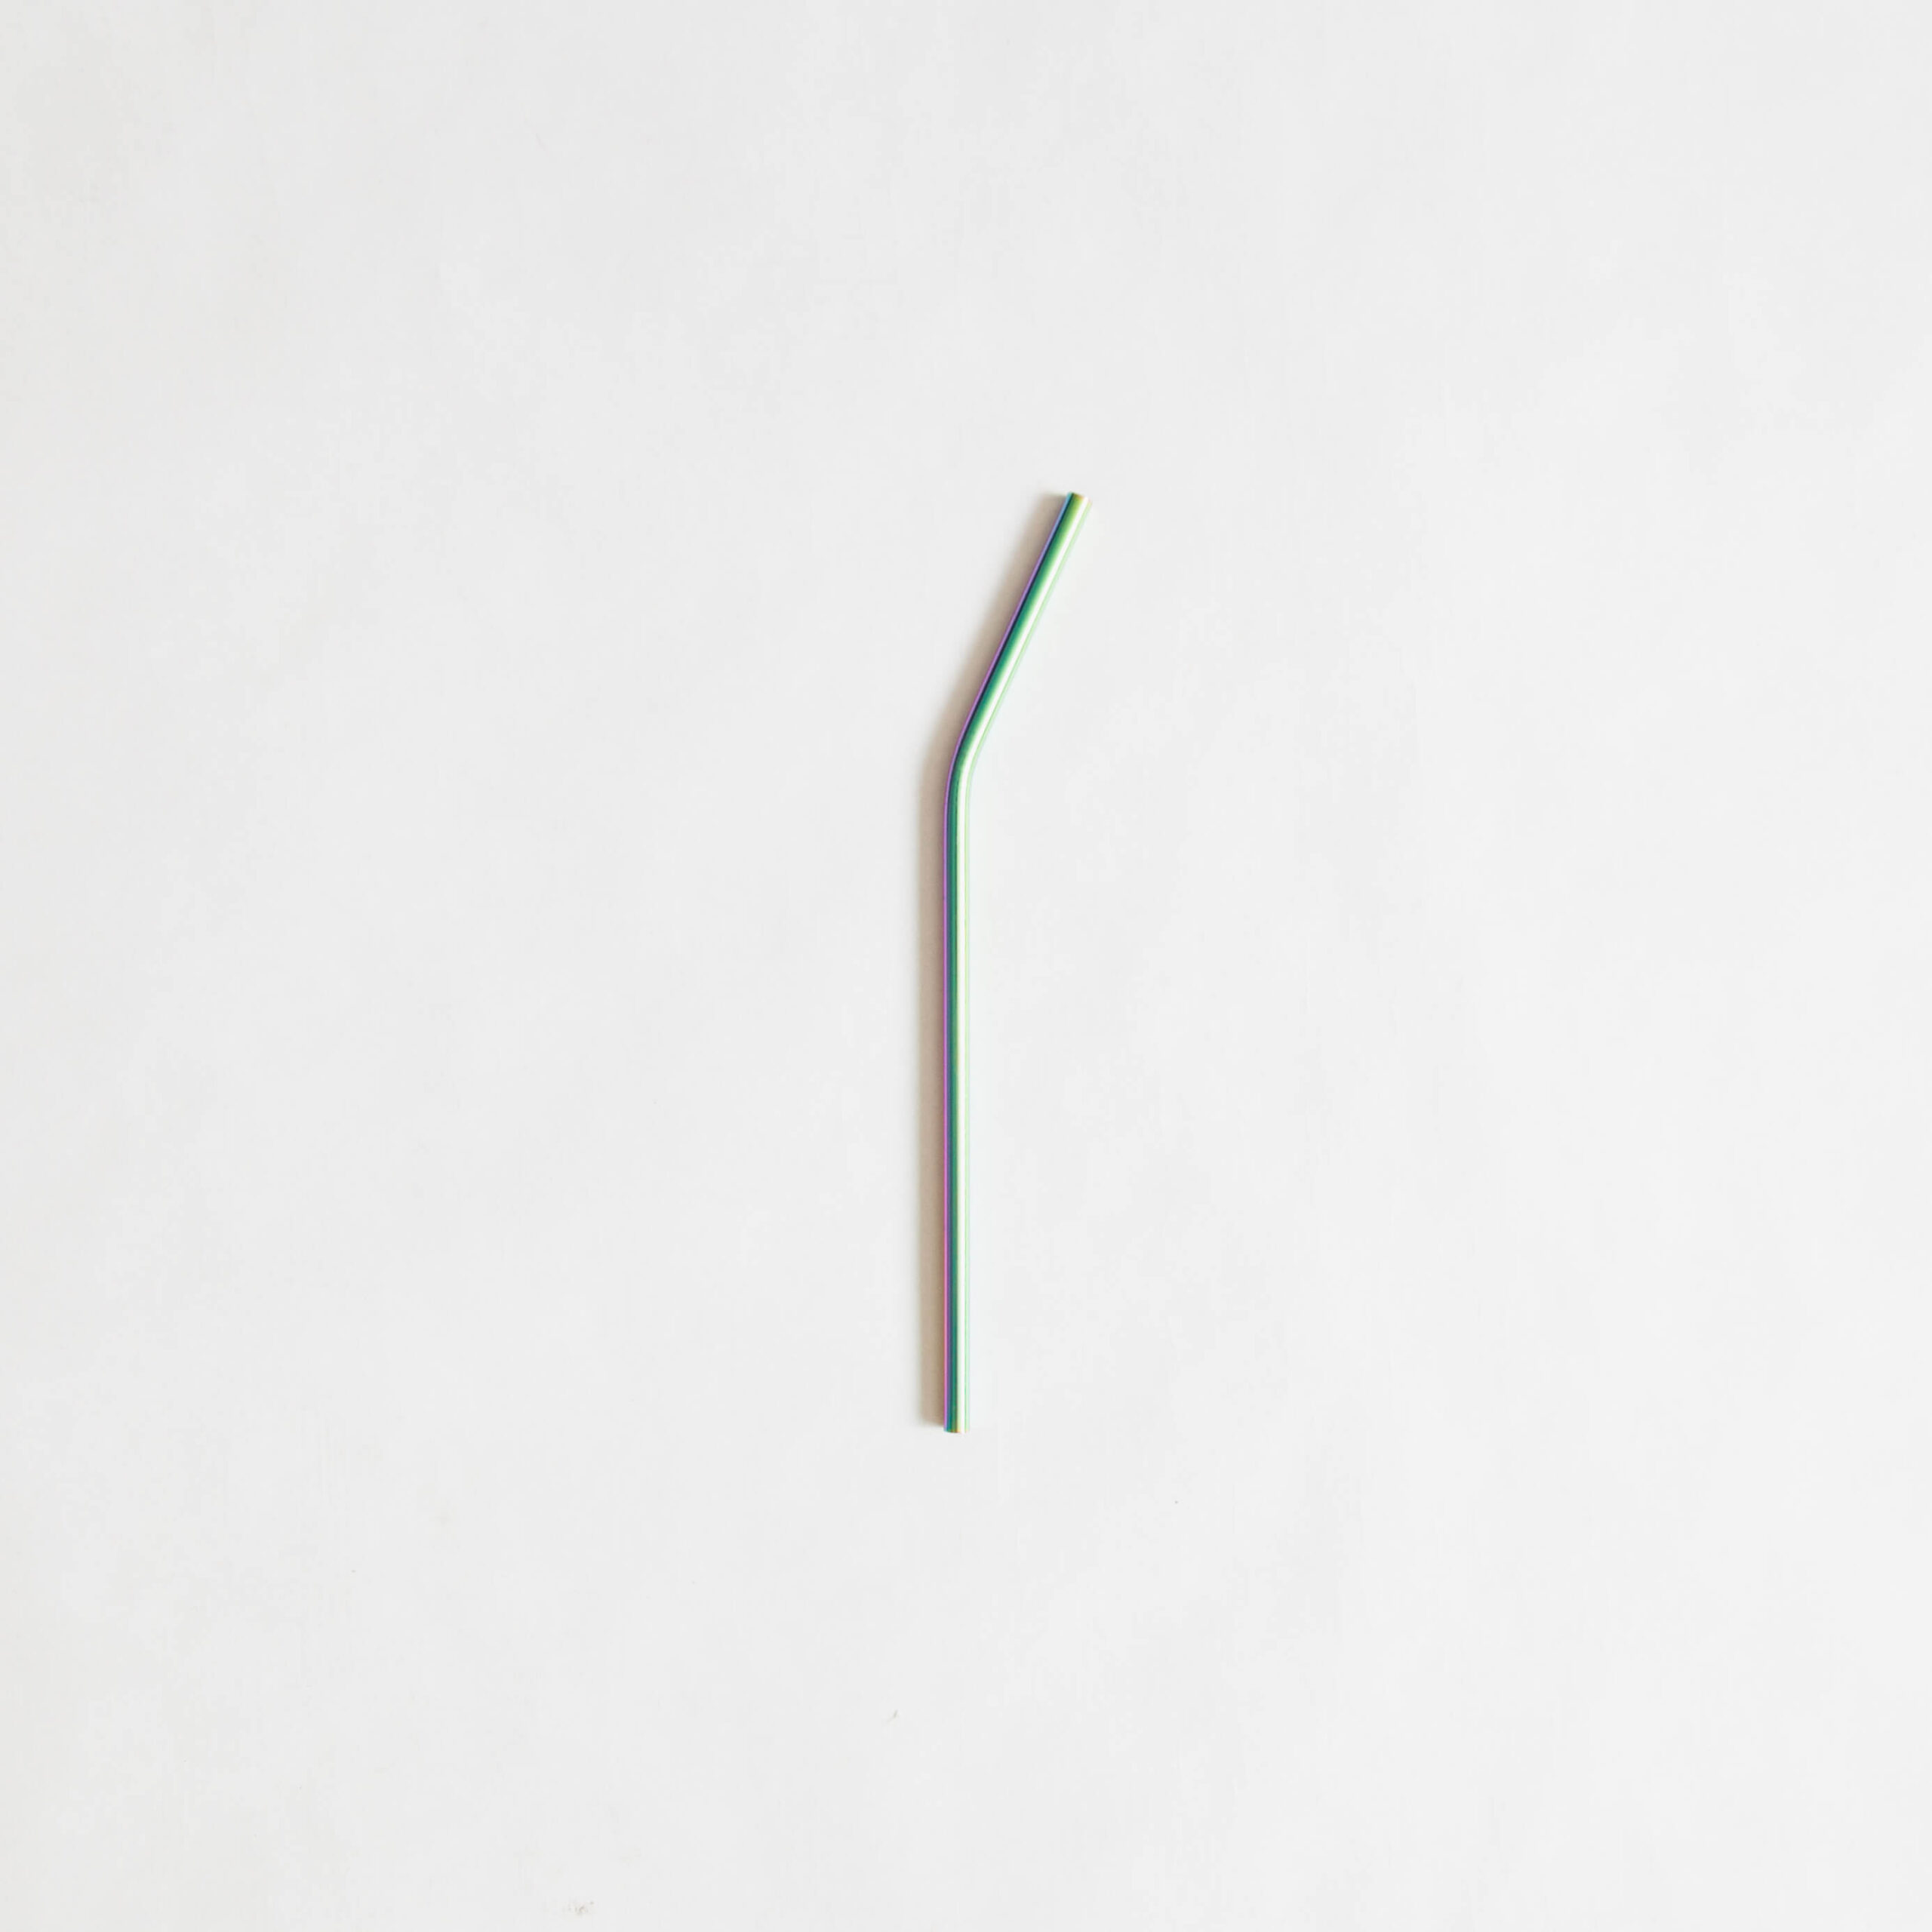 Bent Stainless Steel Straw